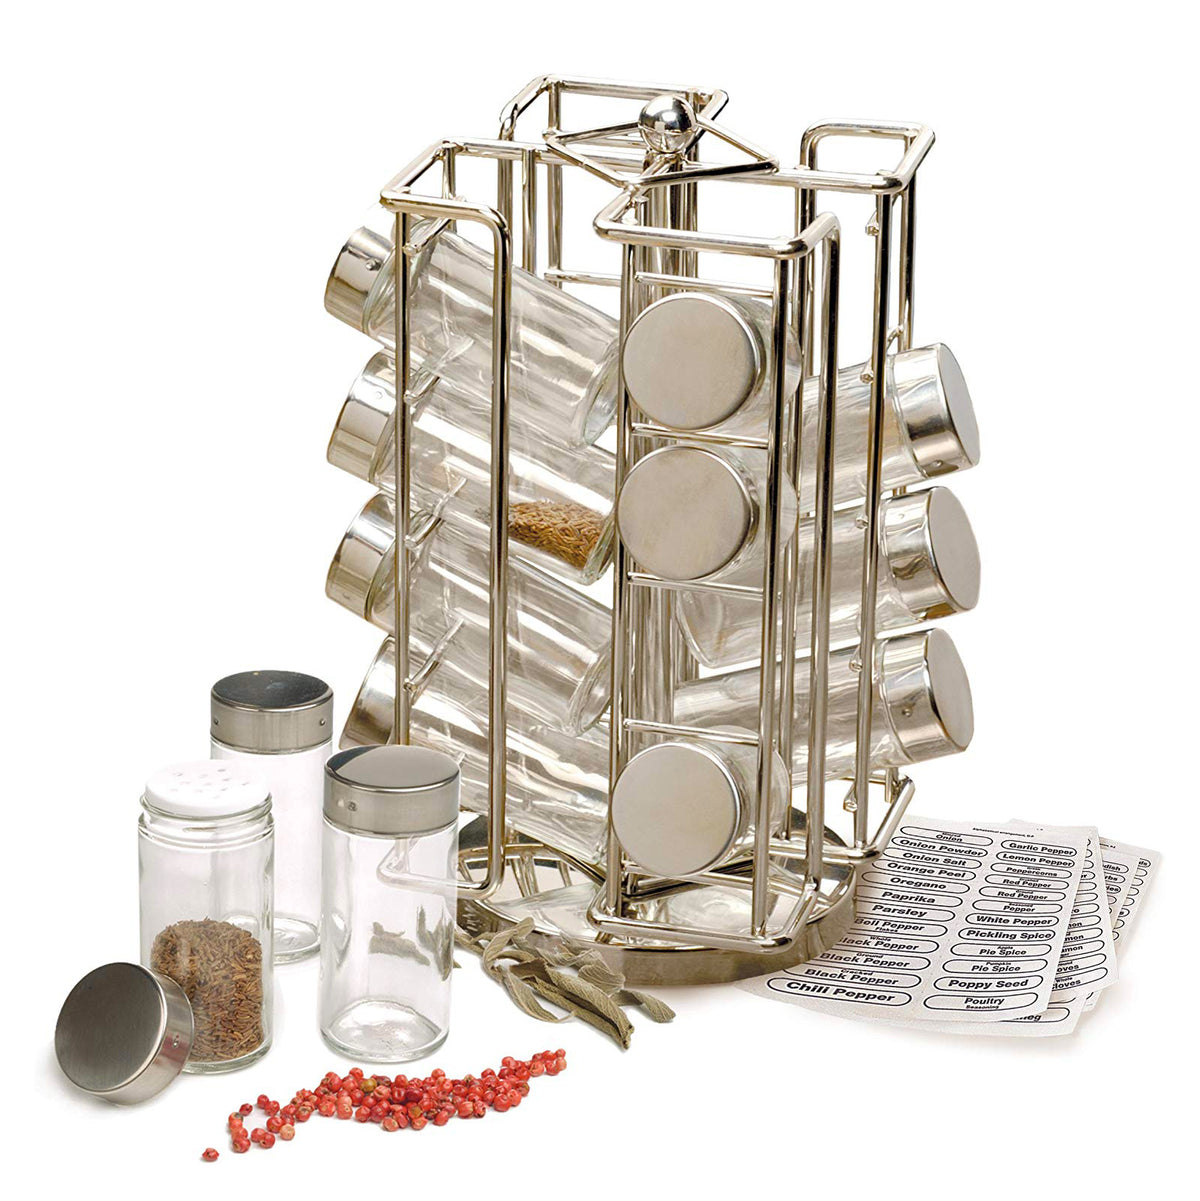 Revolving Countertop Spice Rack - Premium_Accessories - Red Stick Spice Company